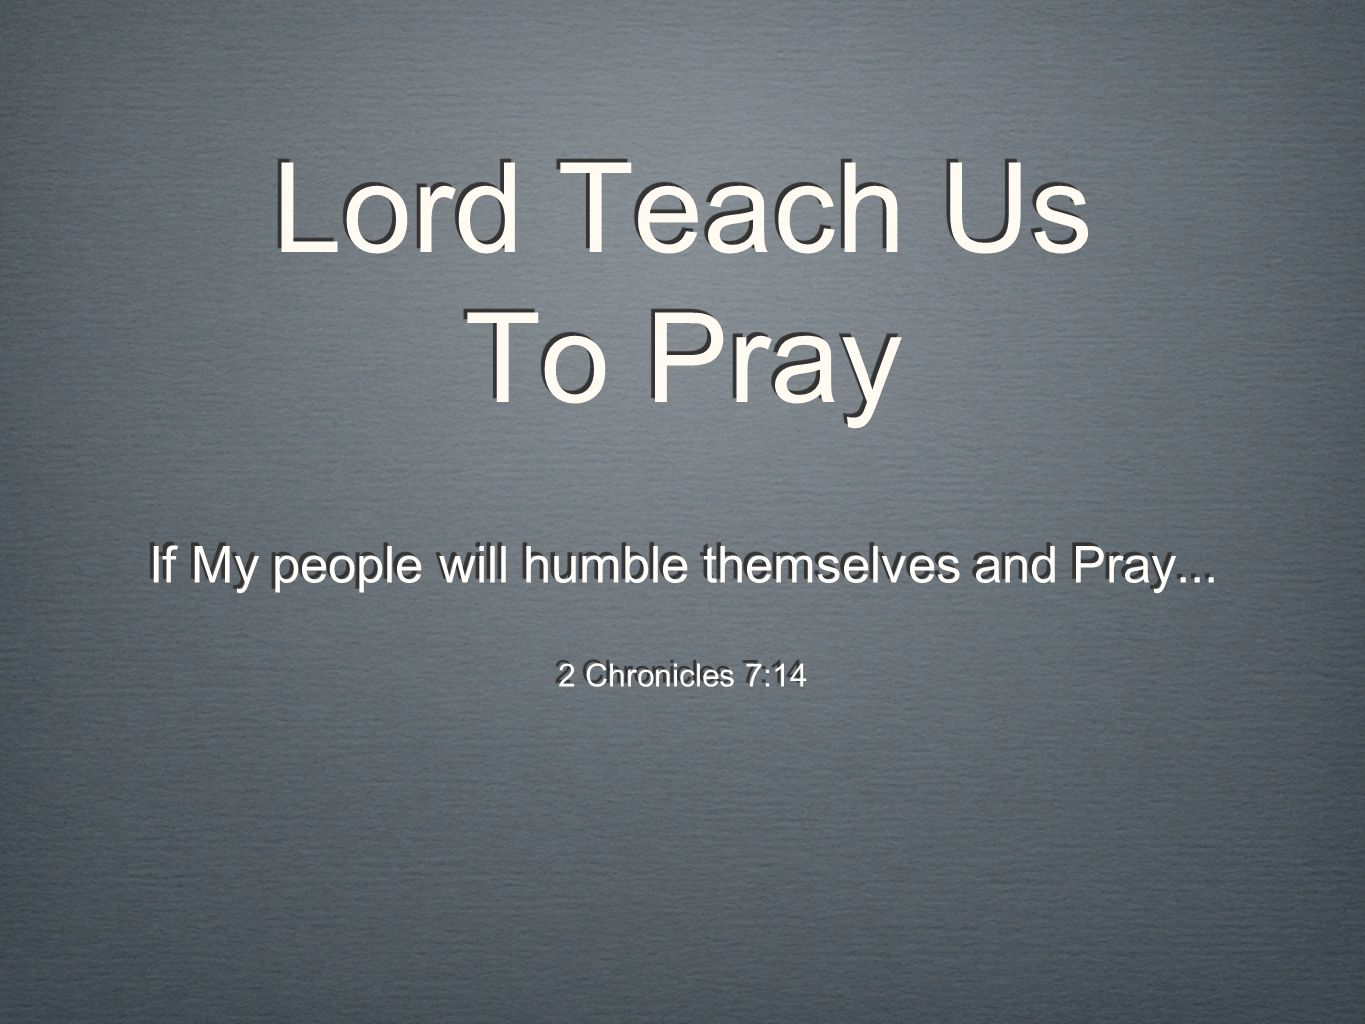 Lord Teach Us To Pray If My people will humble themselves and Pray... 2 Chronicles 7:14 If My people will humble themselves and Pray... 2 Chronicles 7